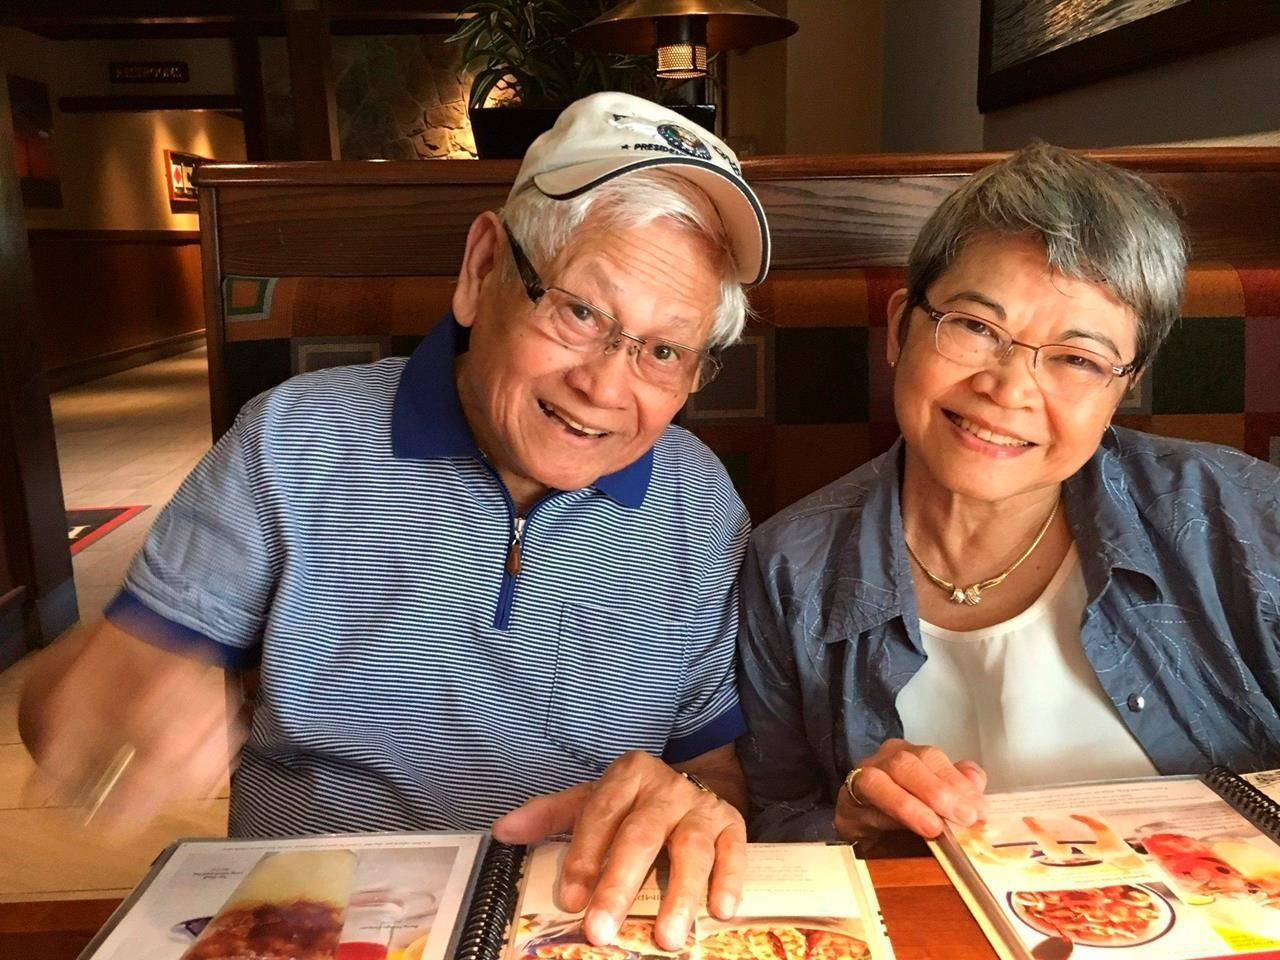 This 2018 photo provided by Cris Charbonneau shows Gil and Mercy Galicia in Beaverton, Ore. The couple have barely left their home since coronavirus lockdowns began, said their daughter, Cris Charbonneau. They had not been able to see their large, close-knit family, three children and six grandchildren spread across the country. Like many seniors, the year has been especially hard on them. (Cris Charbonneau via AP)